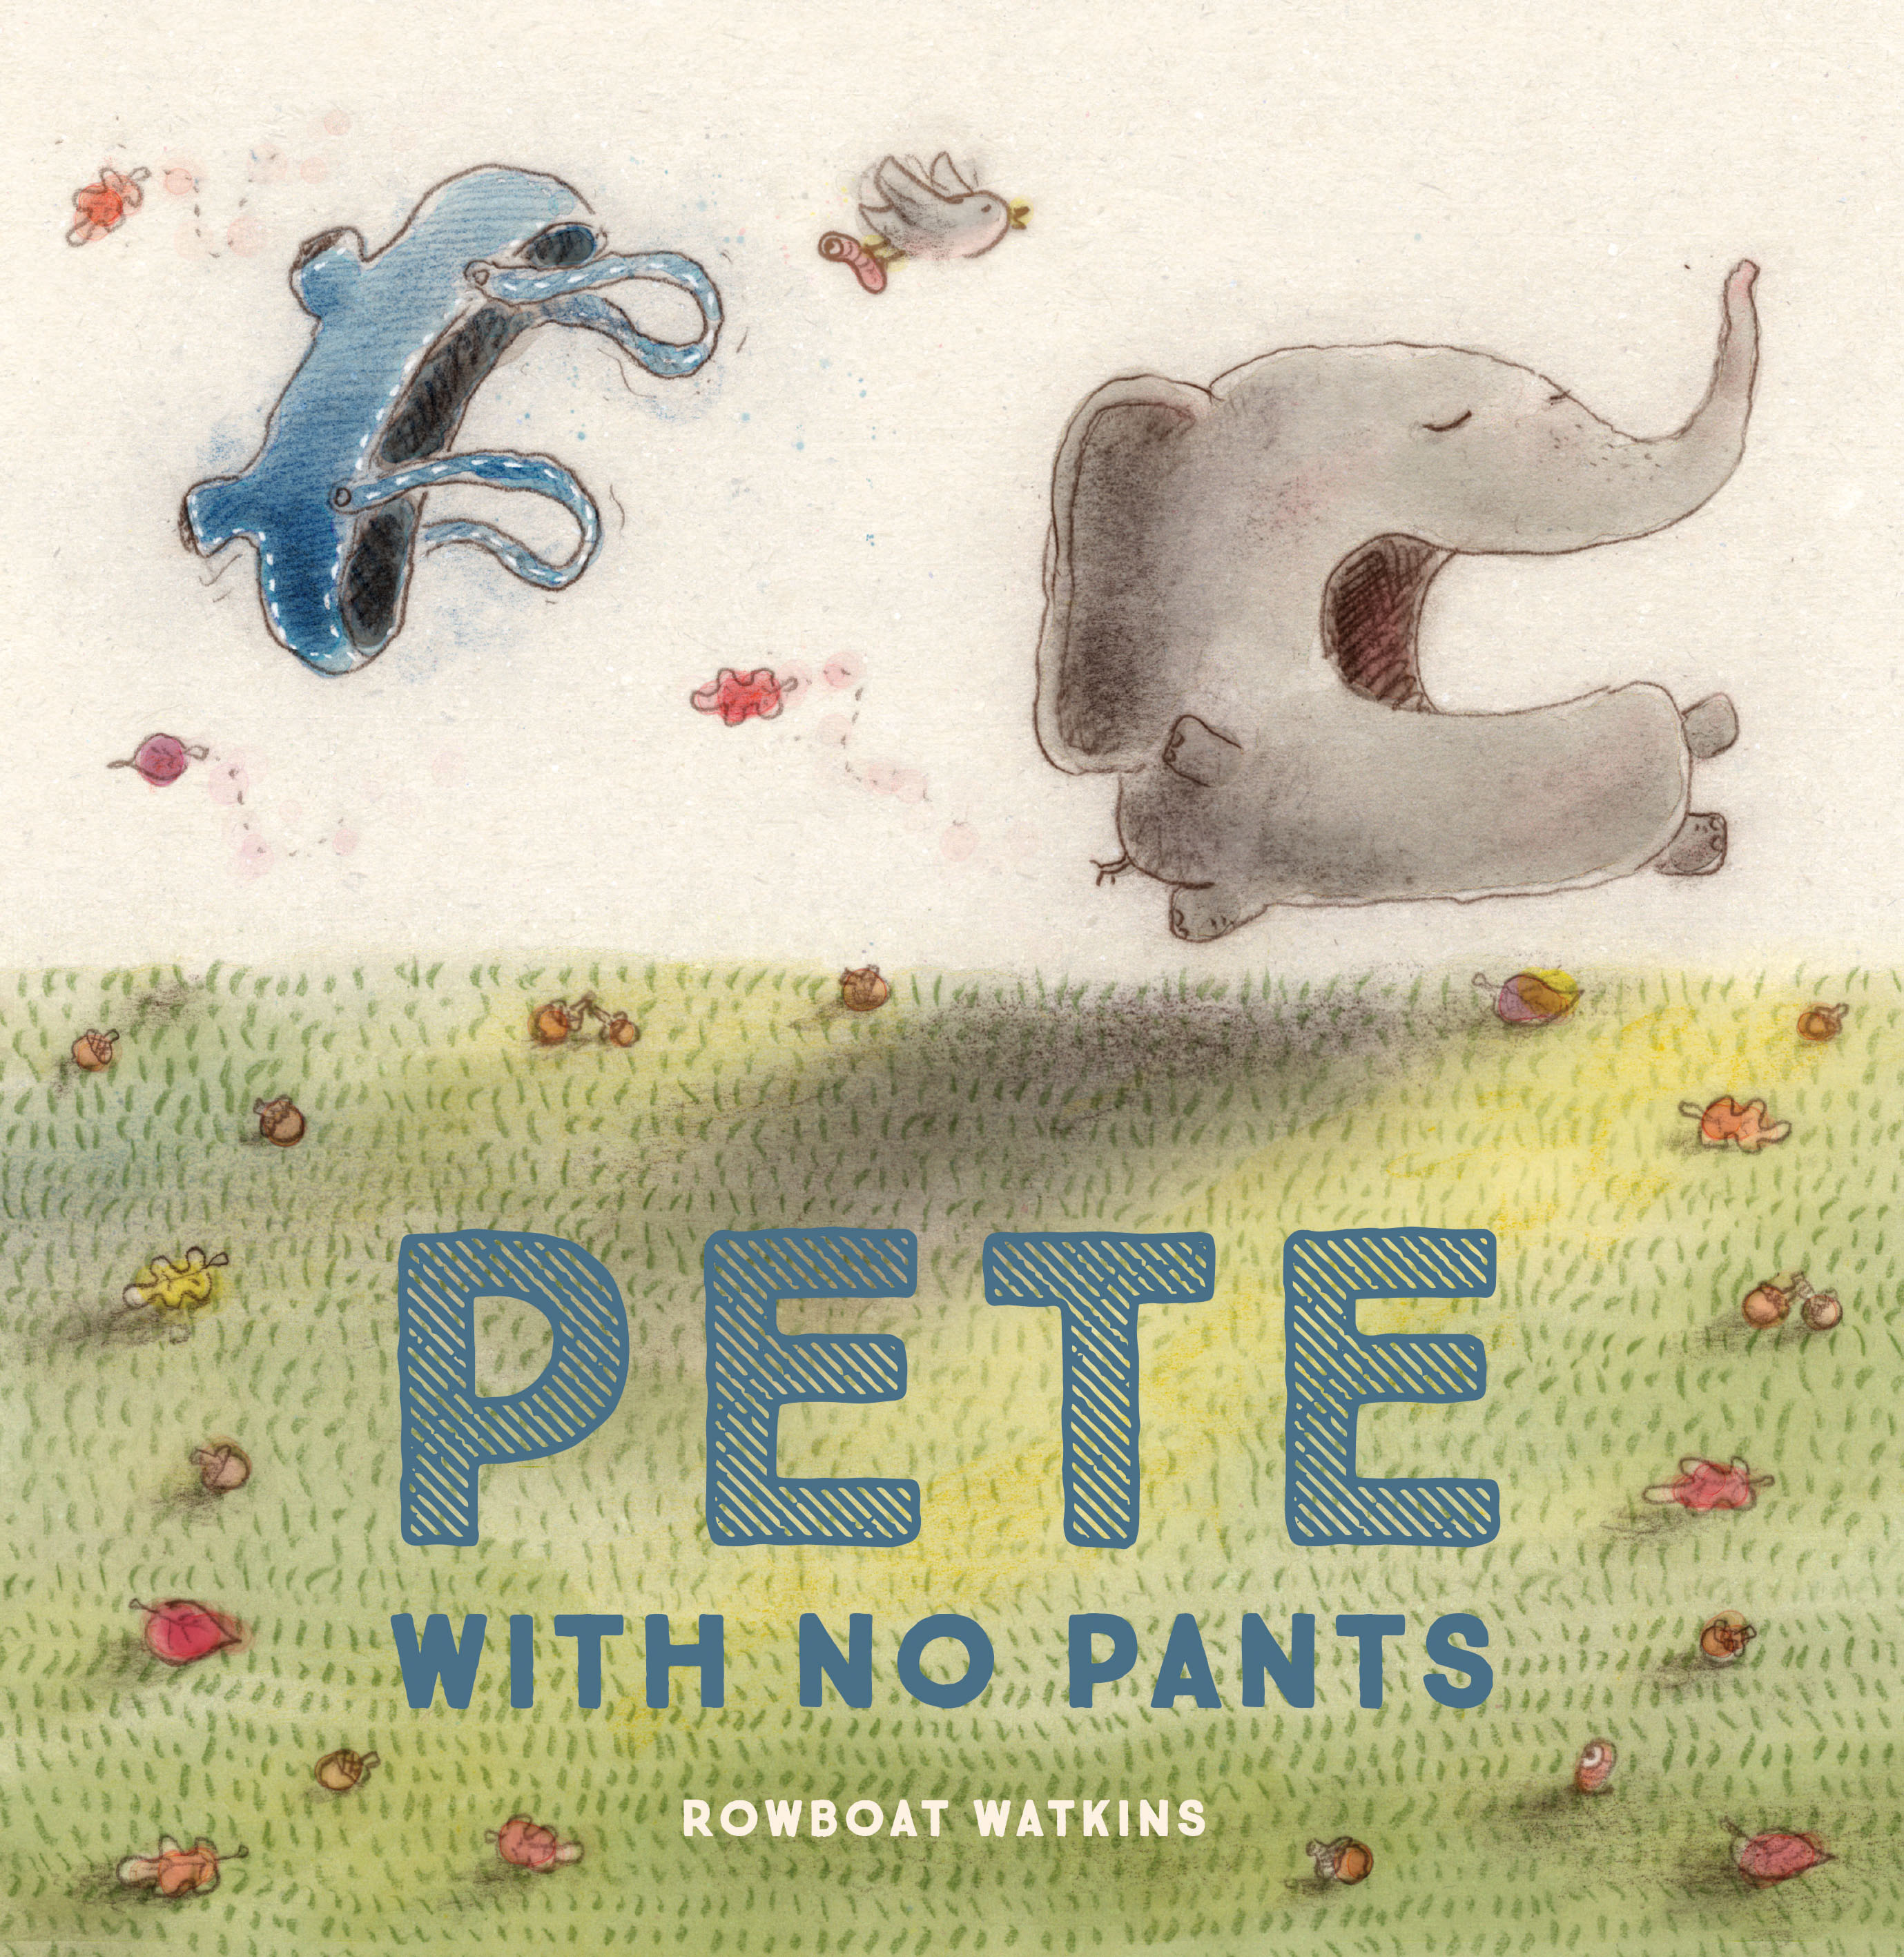 Sunday Story Time with Rowboat Watkins (Author & Illustrator of Pete with No Pants)